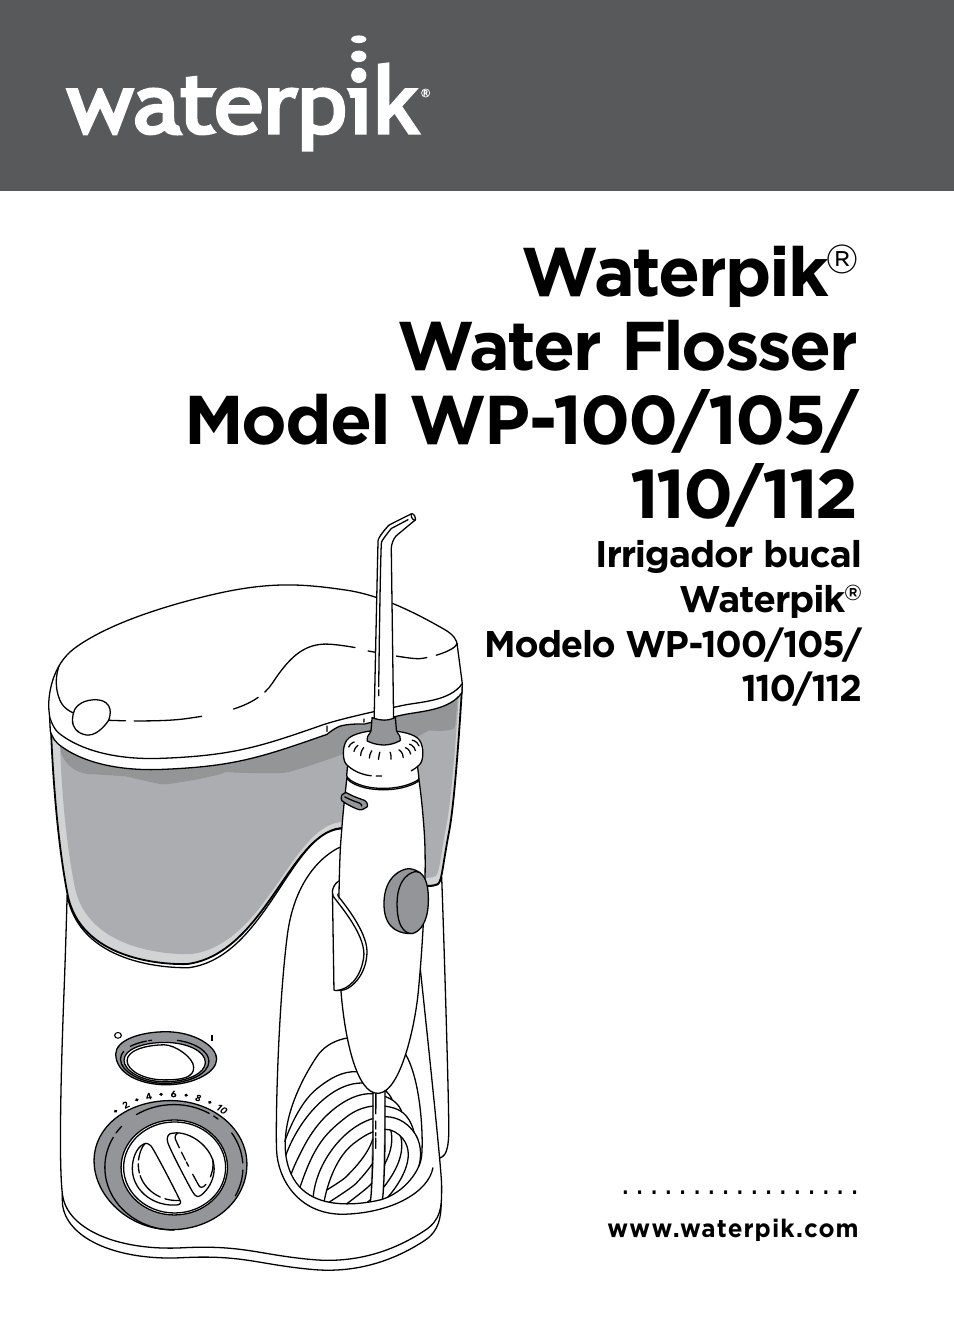 waterpik wp 100 owners manual user manual 19 pages. Black Bedroom Furniture Sets. Home Design Ideas